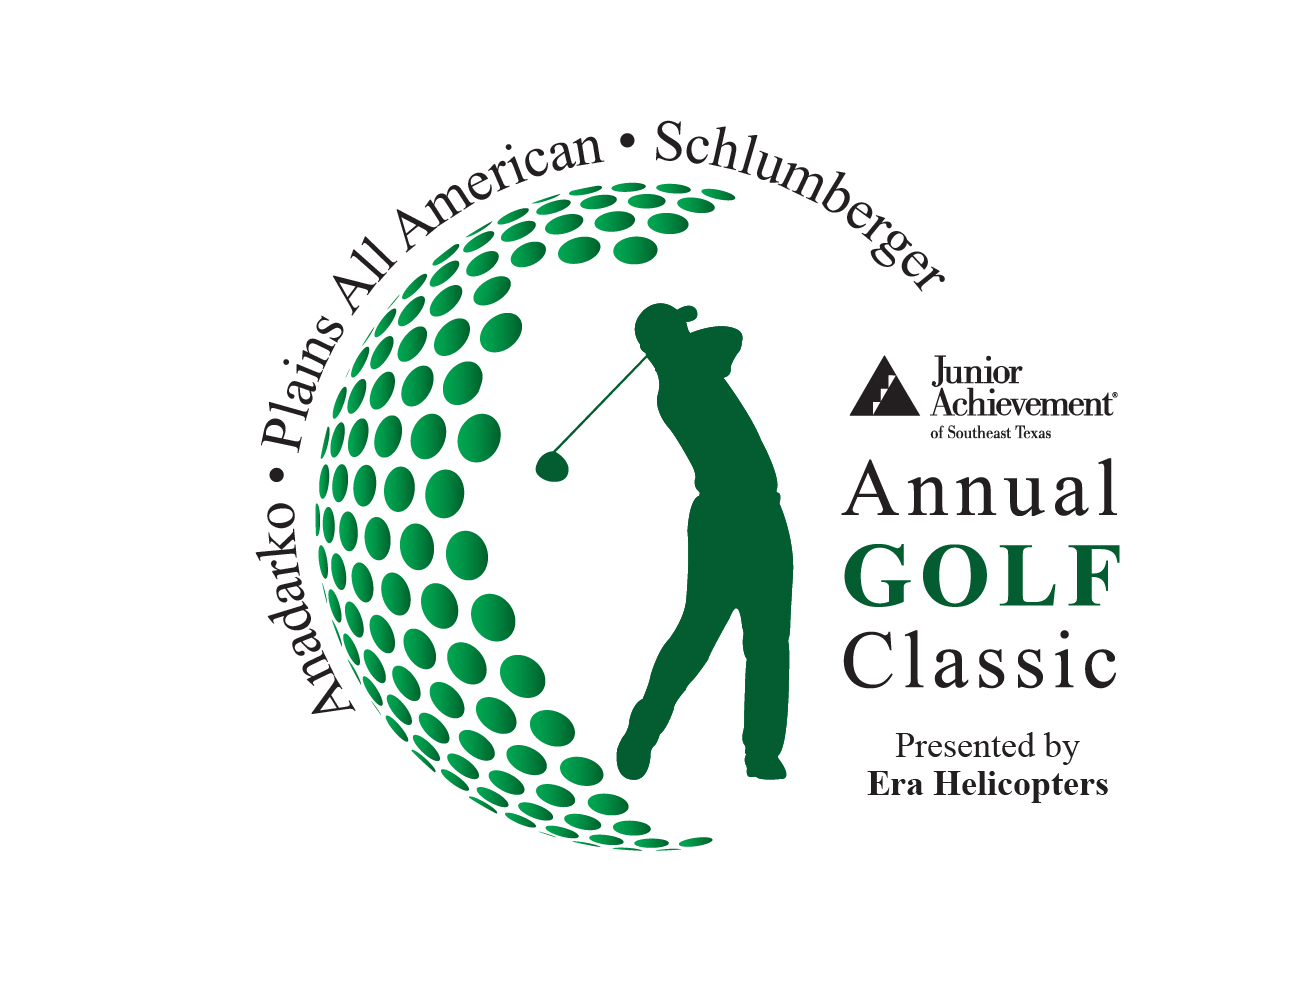 26th Annual Anadarko | Plains All American | Schlumberger Golf Classic presented by Era Helicopters